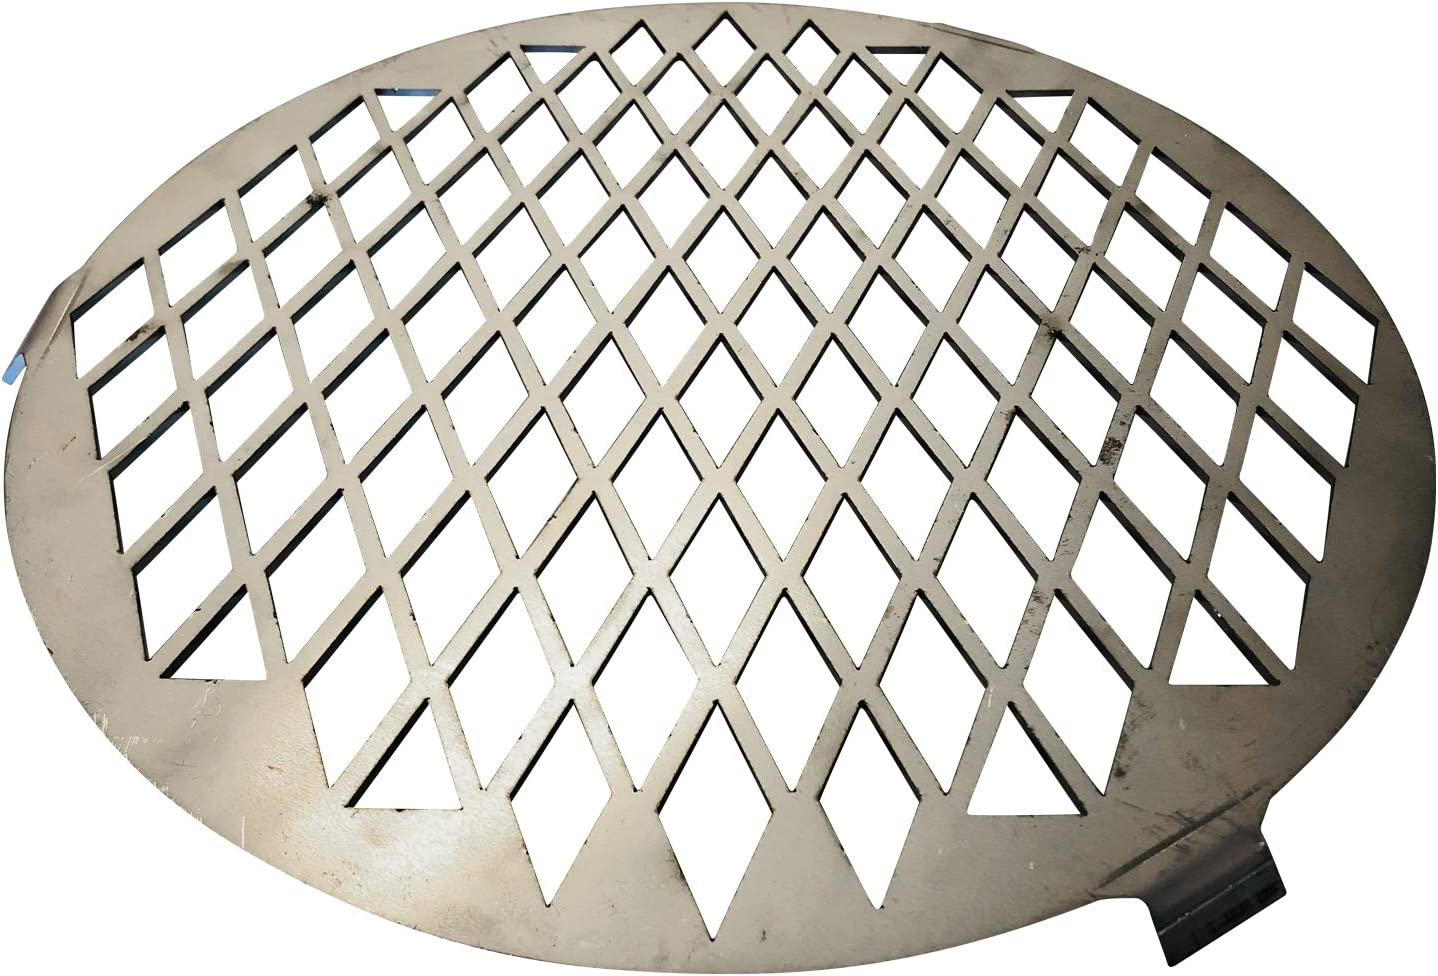 """Vortex Direct Sear Grill Grate Accessory for Medium BBQ Vortex Charcoal Cone; Fits 18.5 22.5 26.5 Weber, WSM, Kettle, UDS - Stainless - USA Made Genuine 12"""" Round (12in Grate for Med Vortex)"""